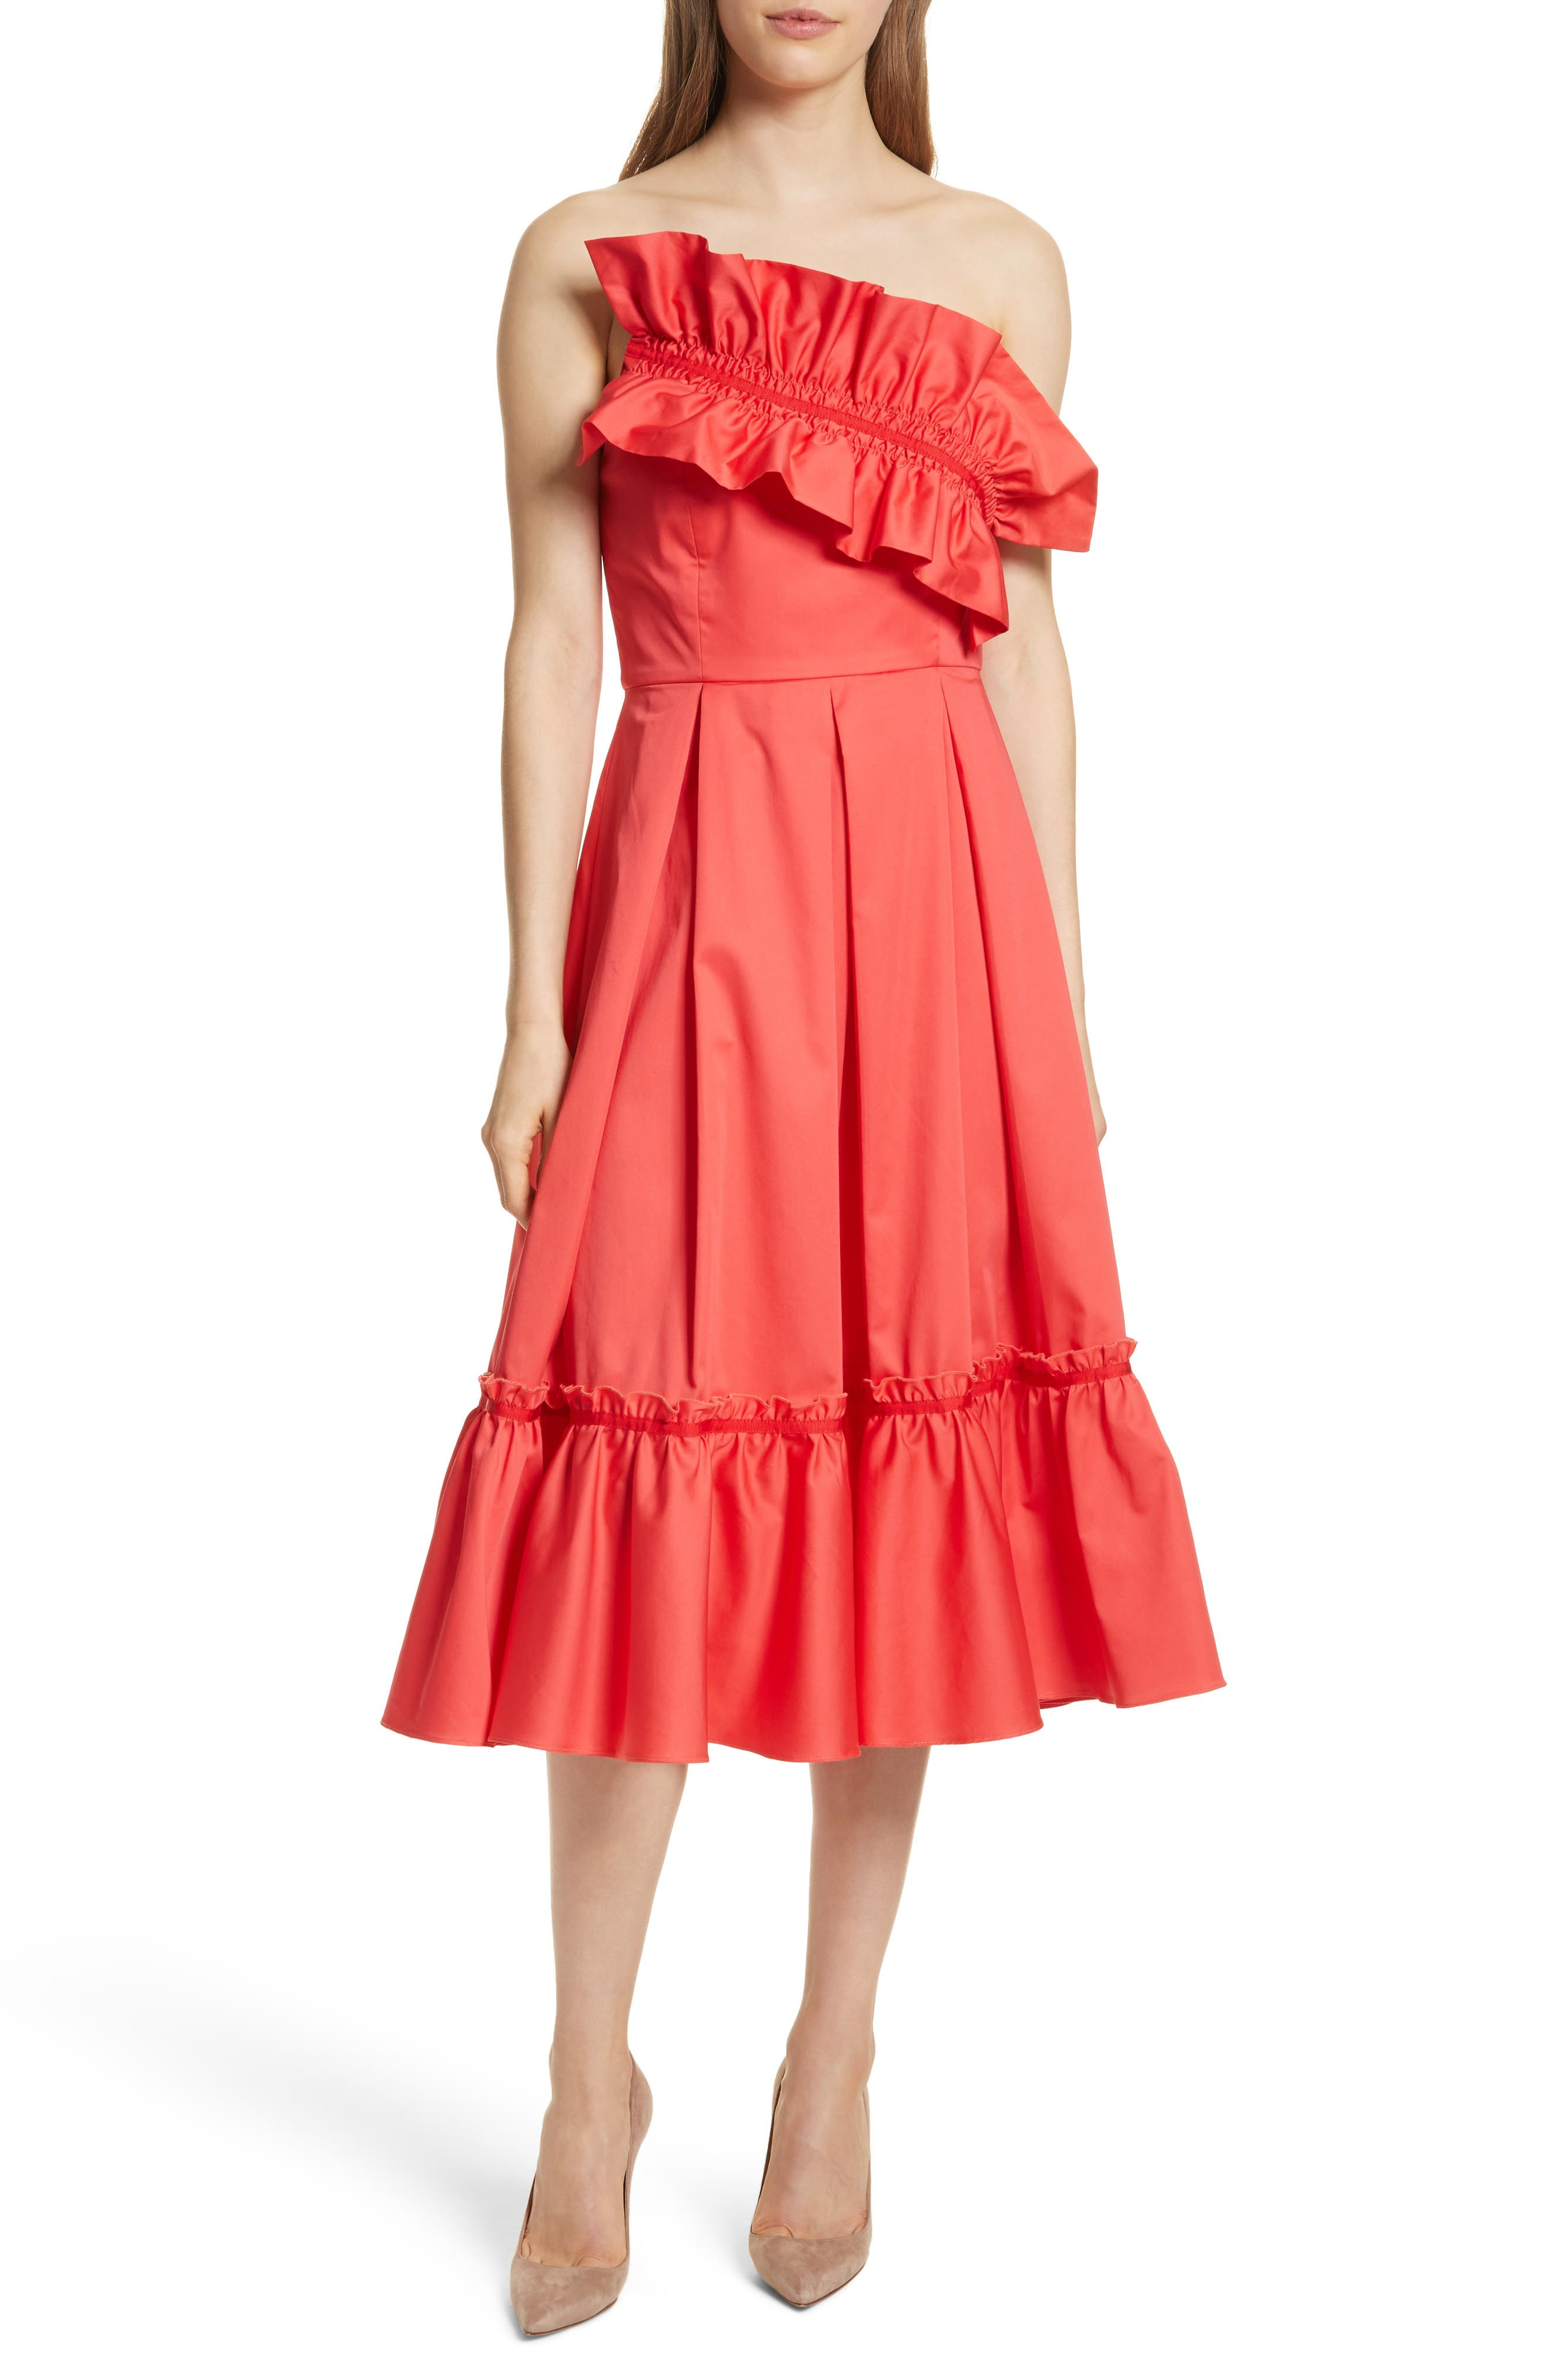 Prose & Poetry Harlow Ruffle Trim Strapless Dress,                             Main thumbnail 1, color,